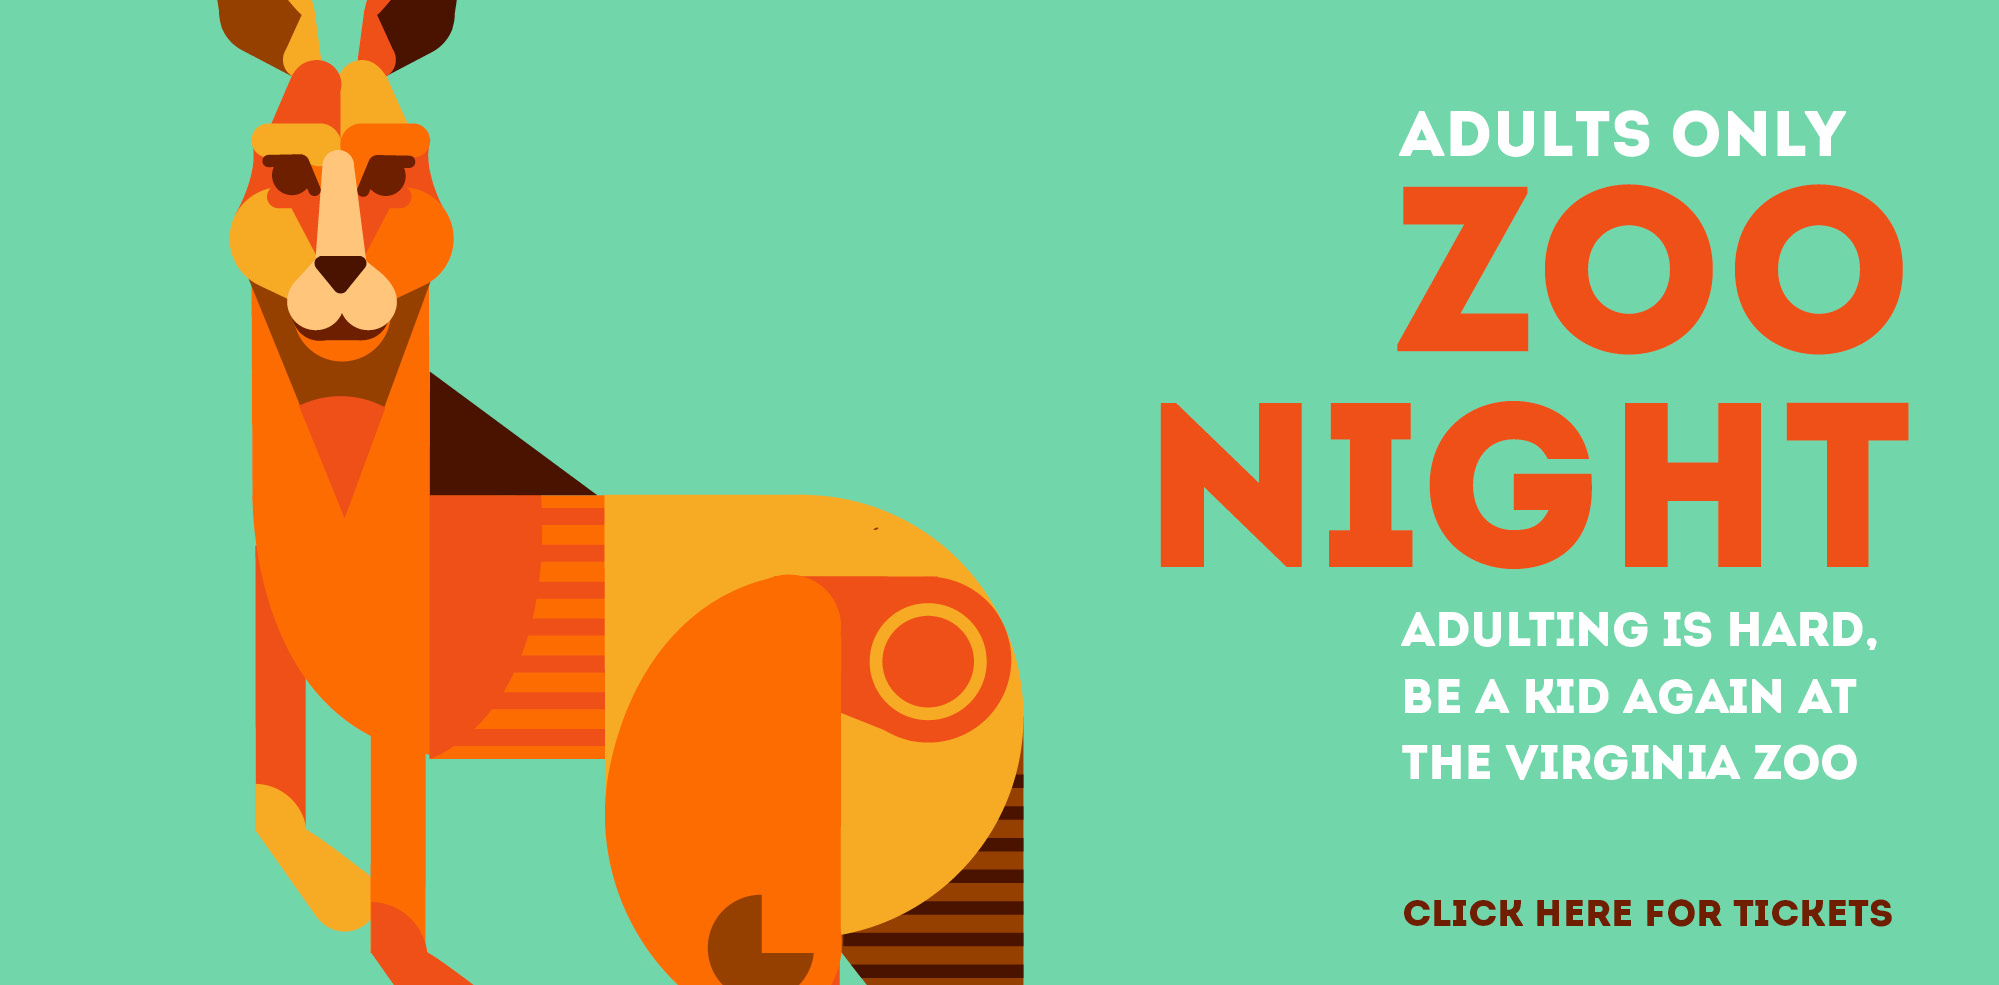 VAZOO_Adults Only_home page banner